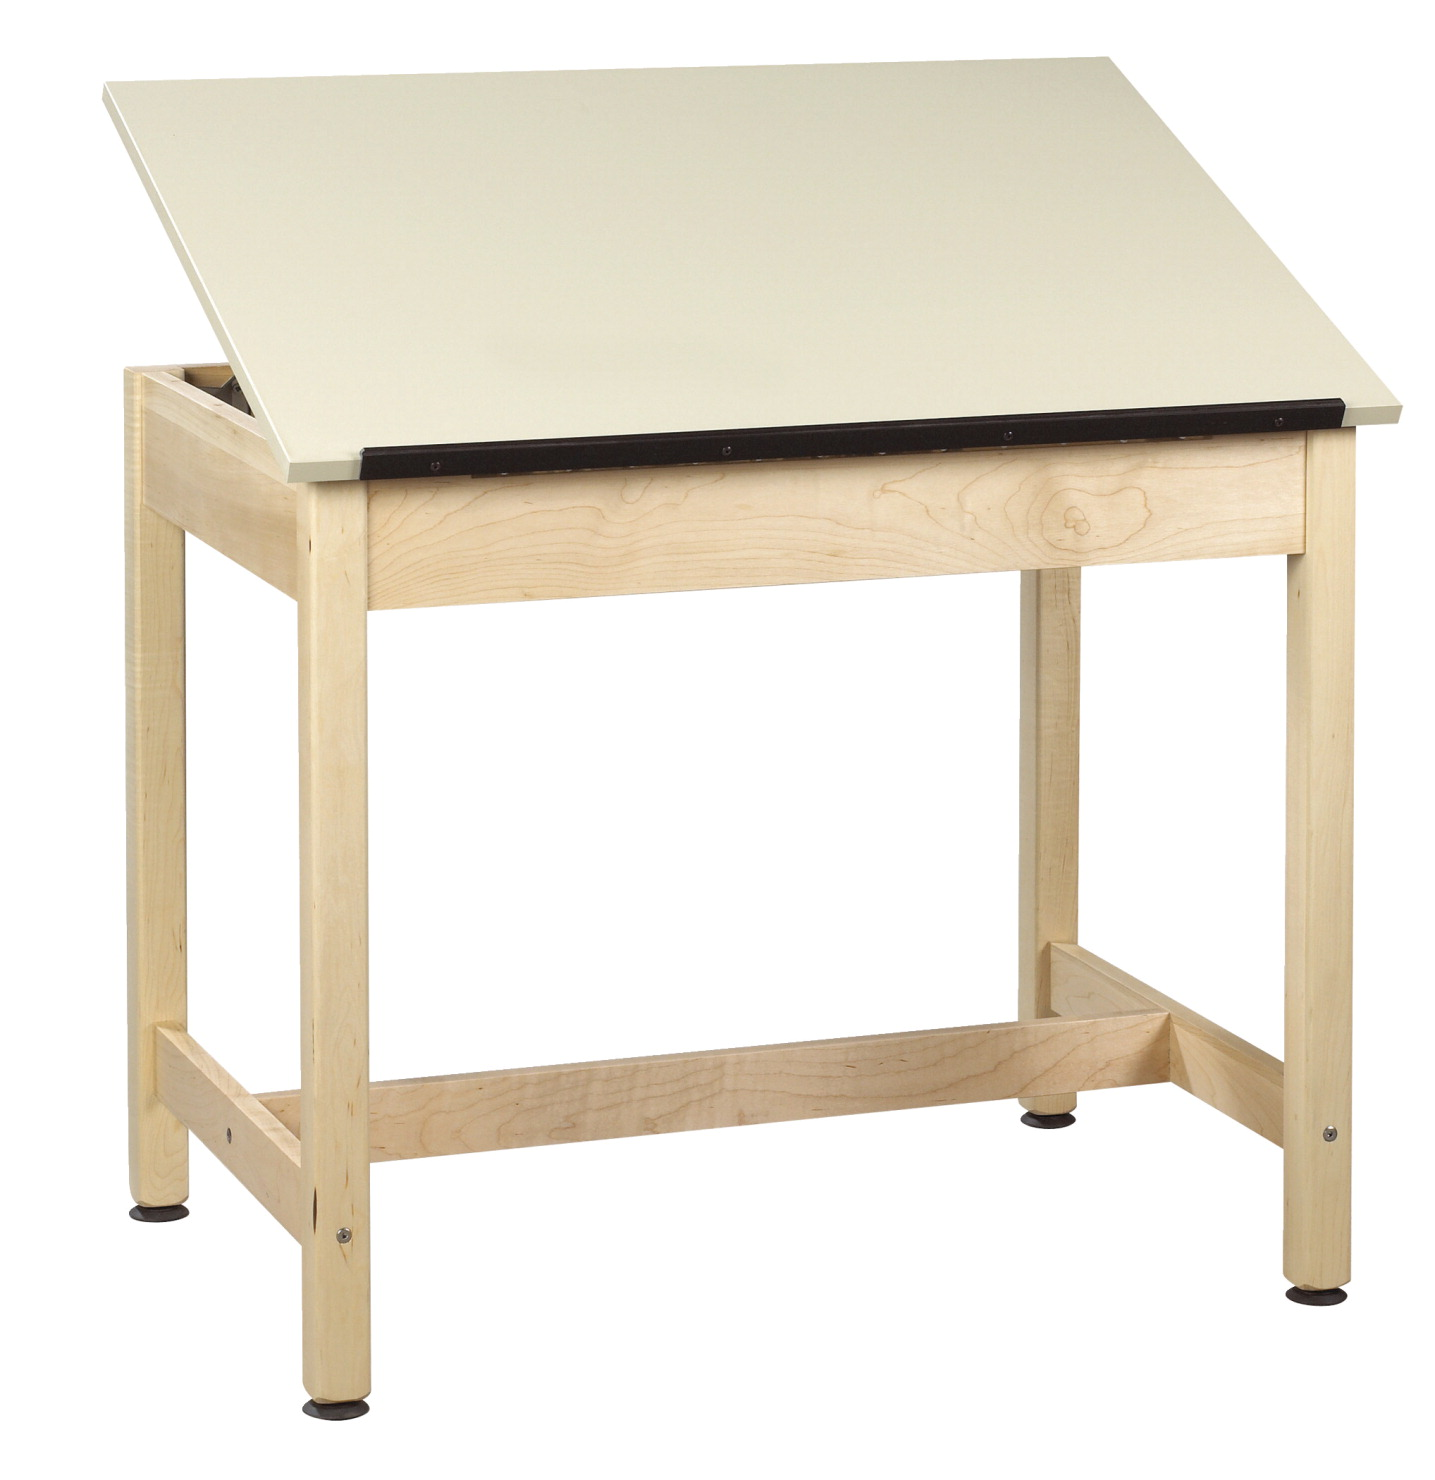 Diversified Woodcrafts Drafting Table, 36 x 24 x 30 Inches, Maple, Plastic